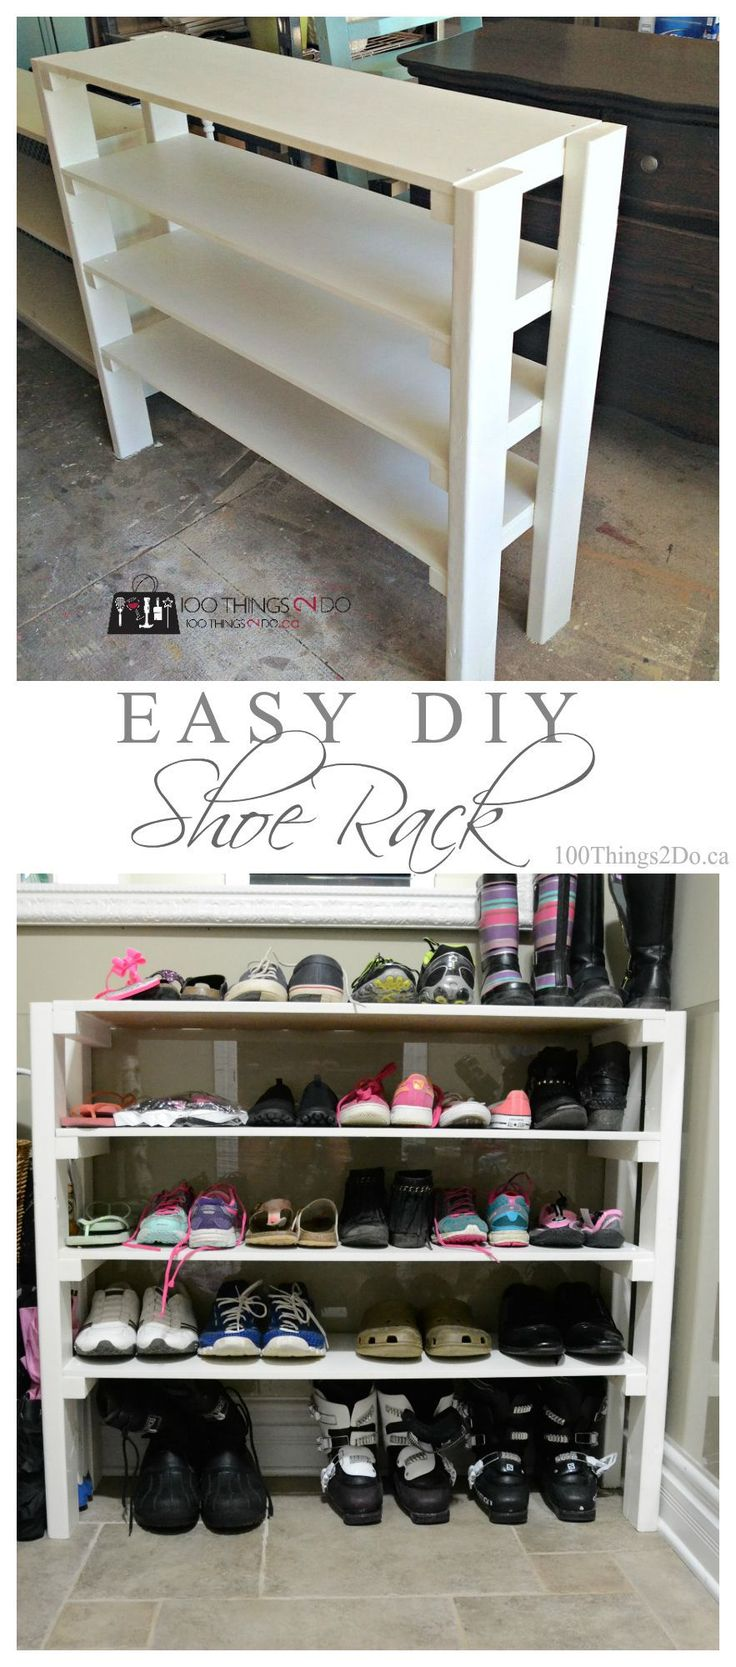 best 25 shoe cubby ideas on pinterest diy shoe storage shoe racks and shoe rack. Black Bedroom Furniture Sets. Home Design Ideas